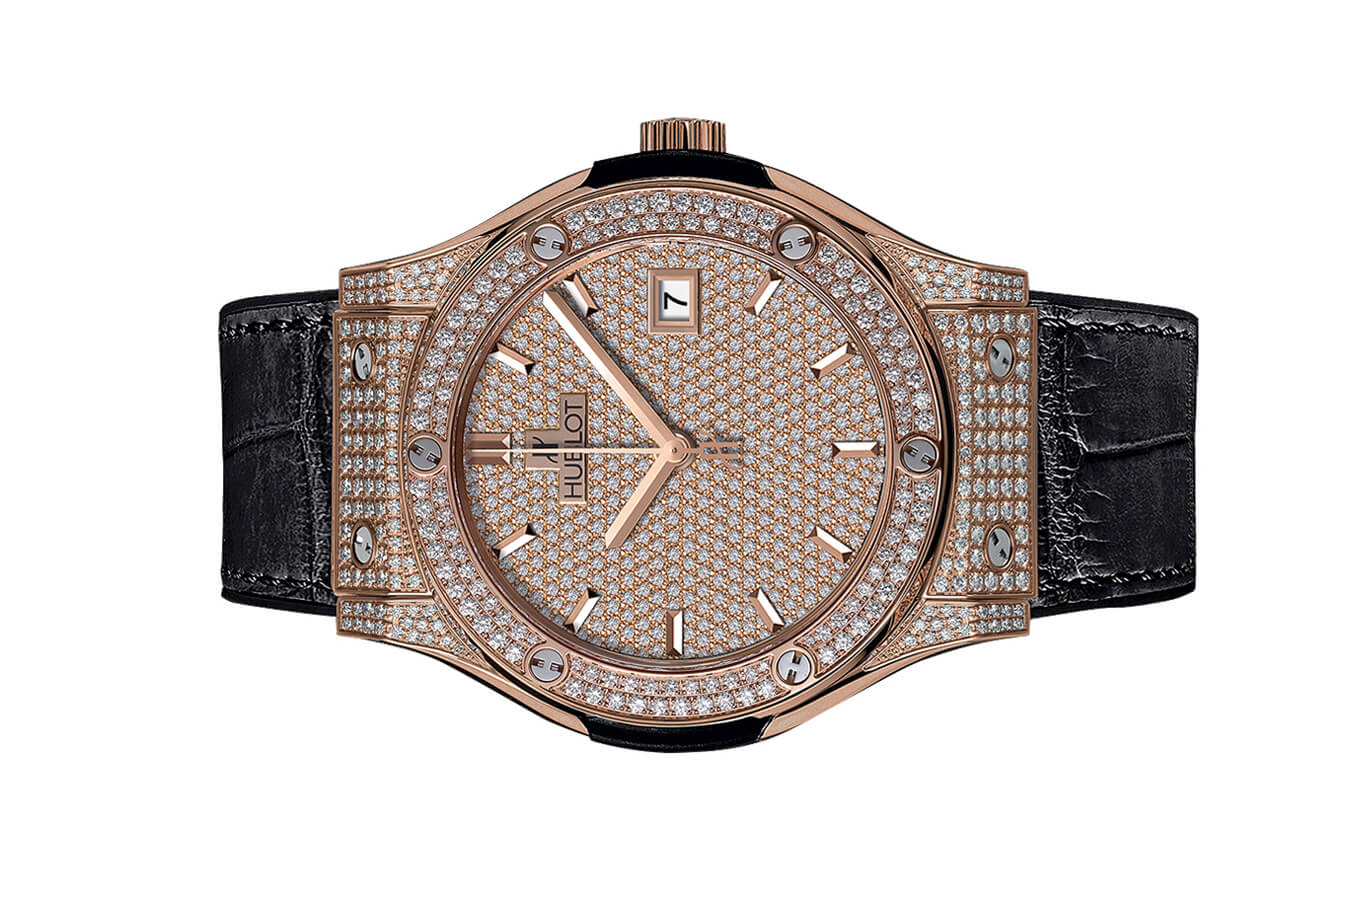 Đồng Hồ Hublot Classic Fusion King Gold Full Pave 42mm 542.ox.9010.lr.1704